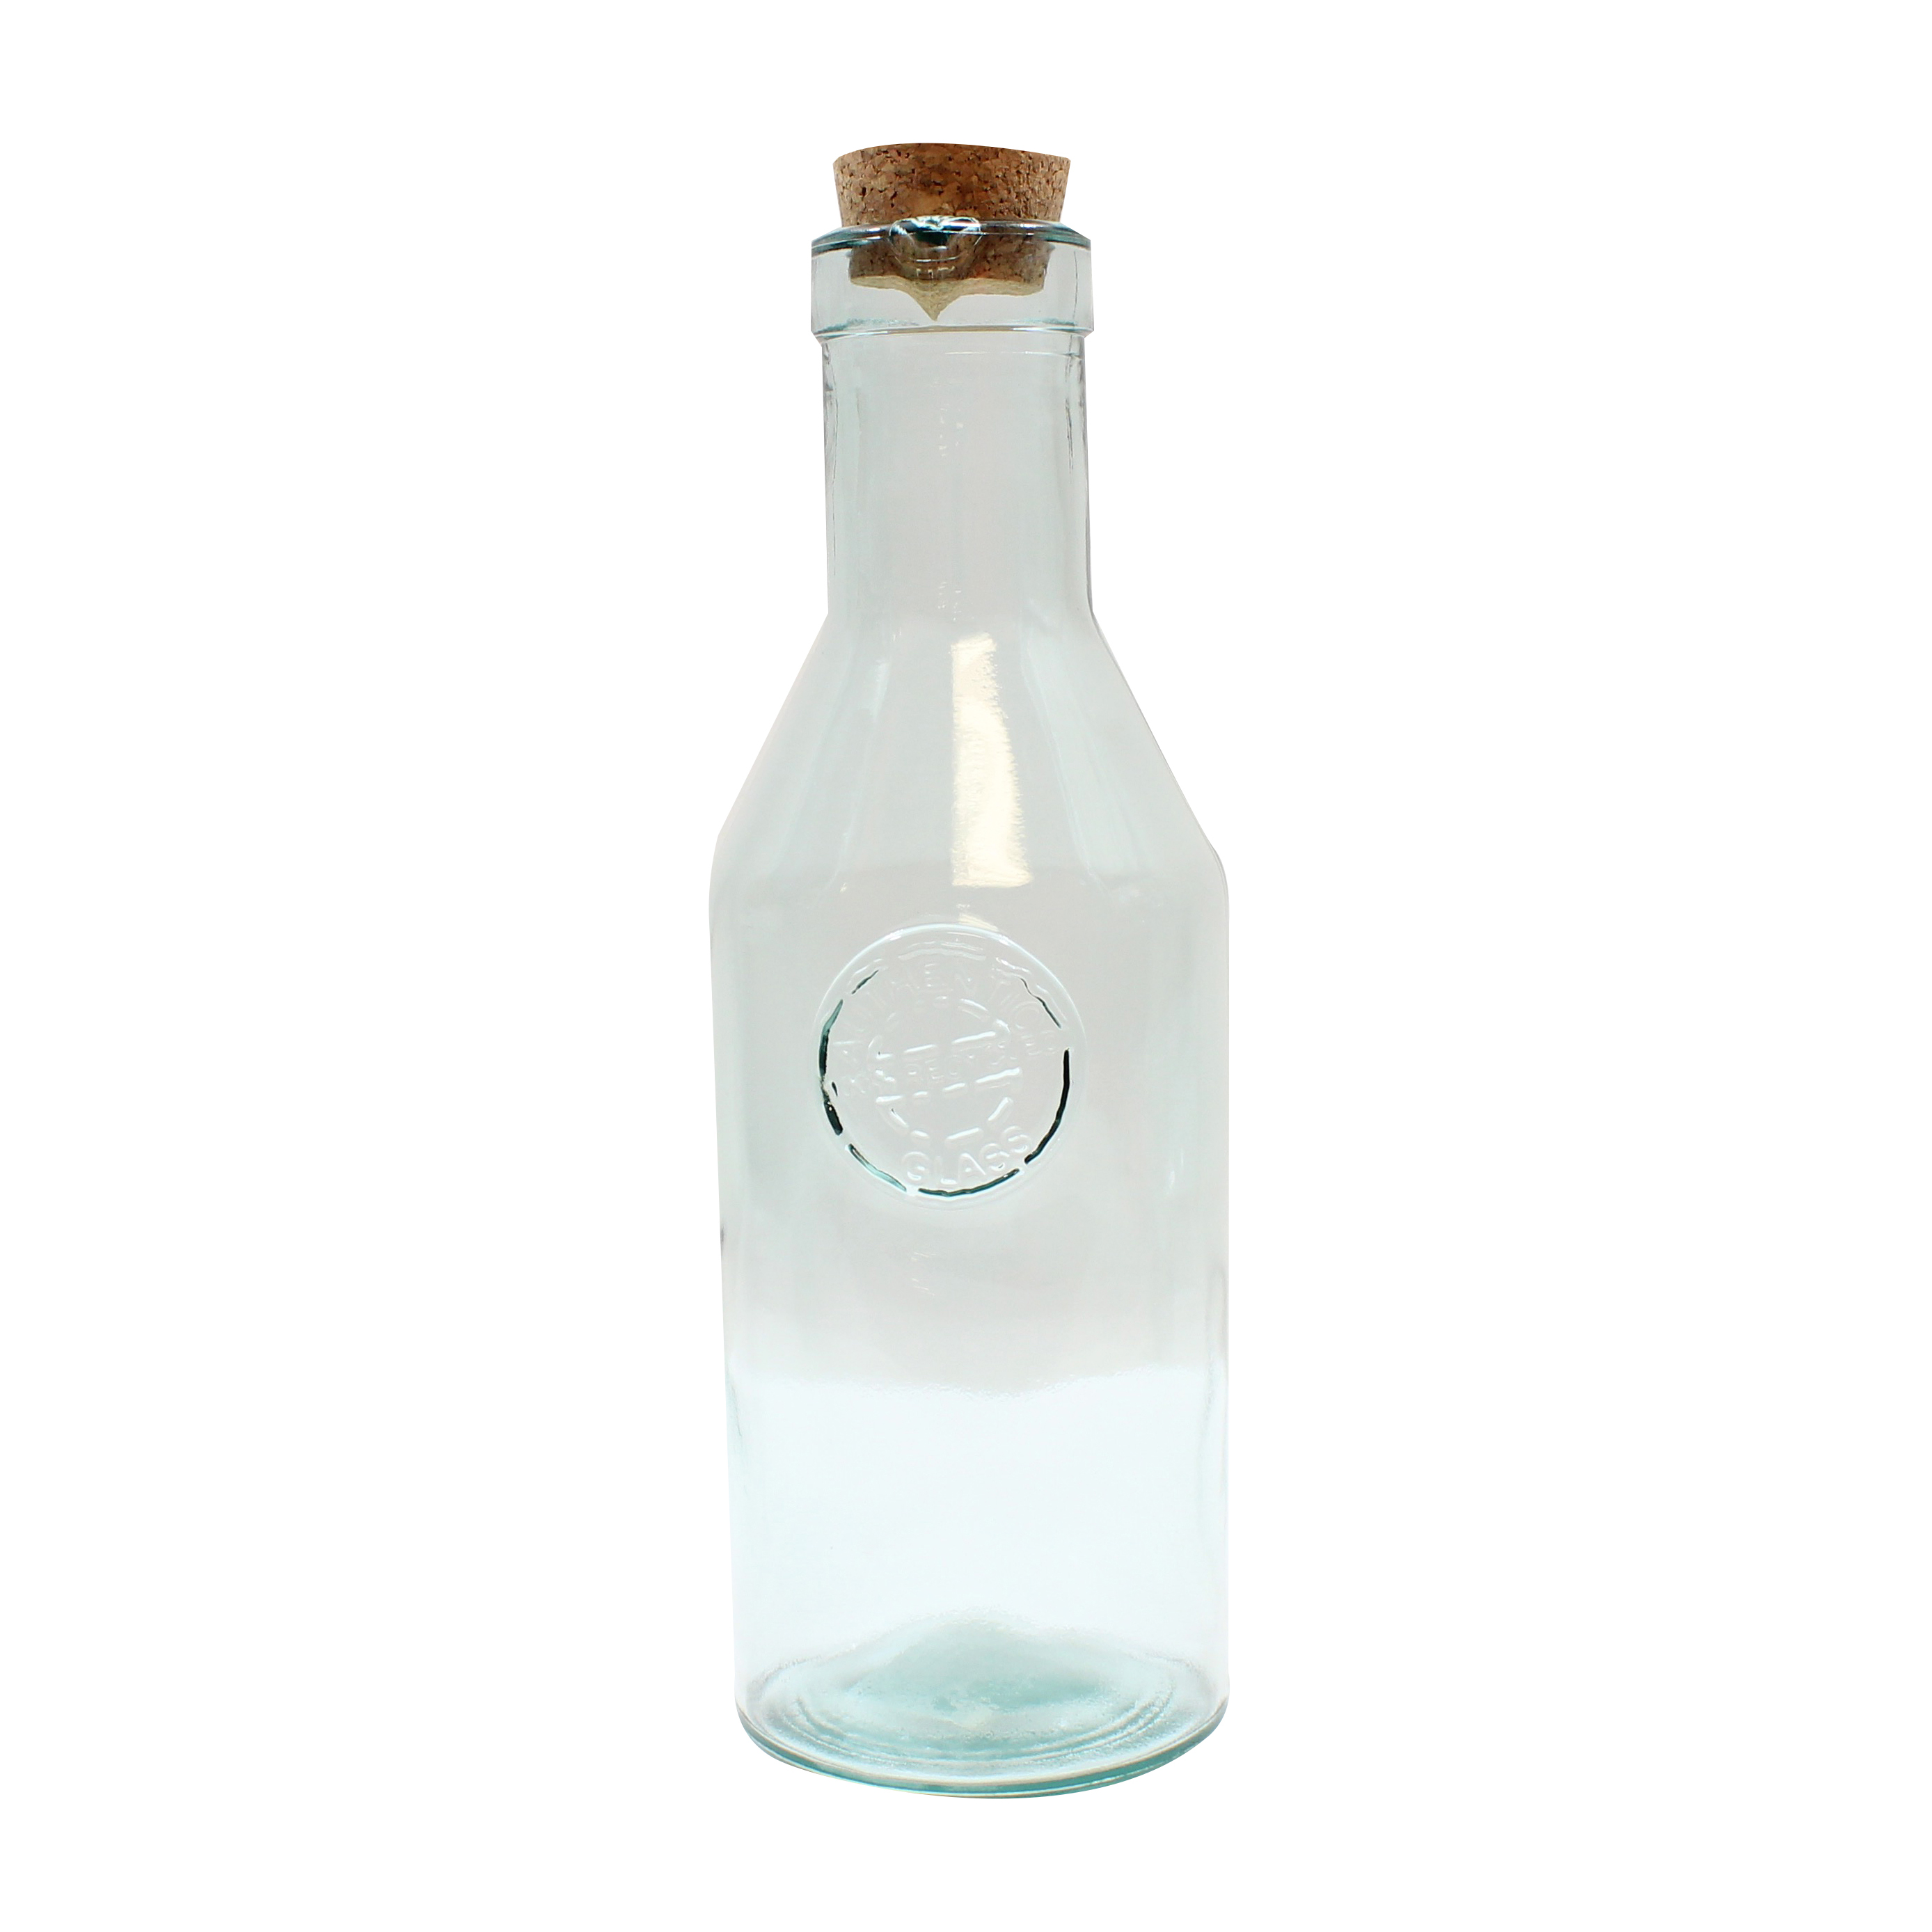 TableCraft Products 6631 beverage bottle